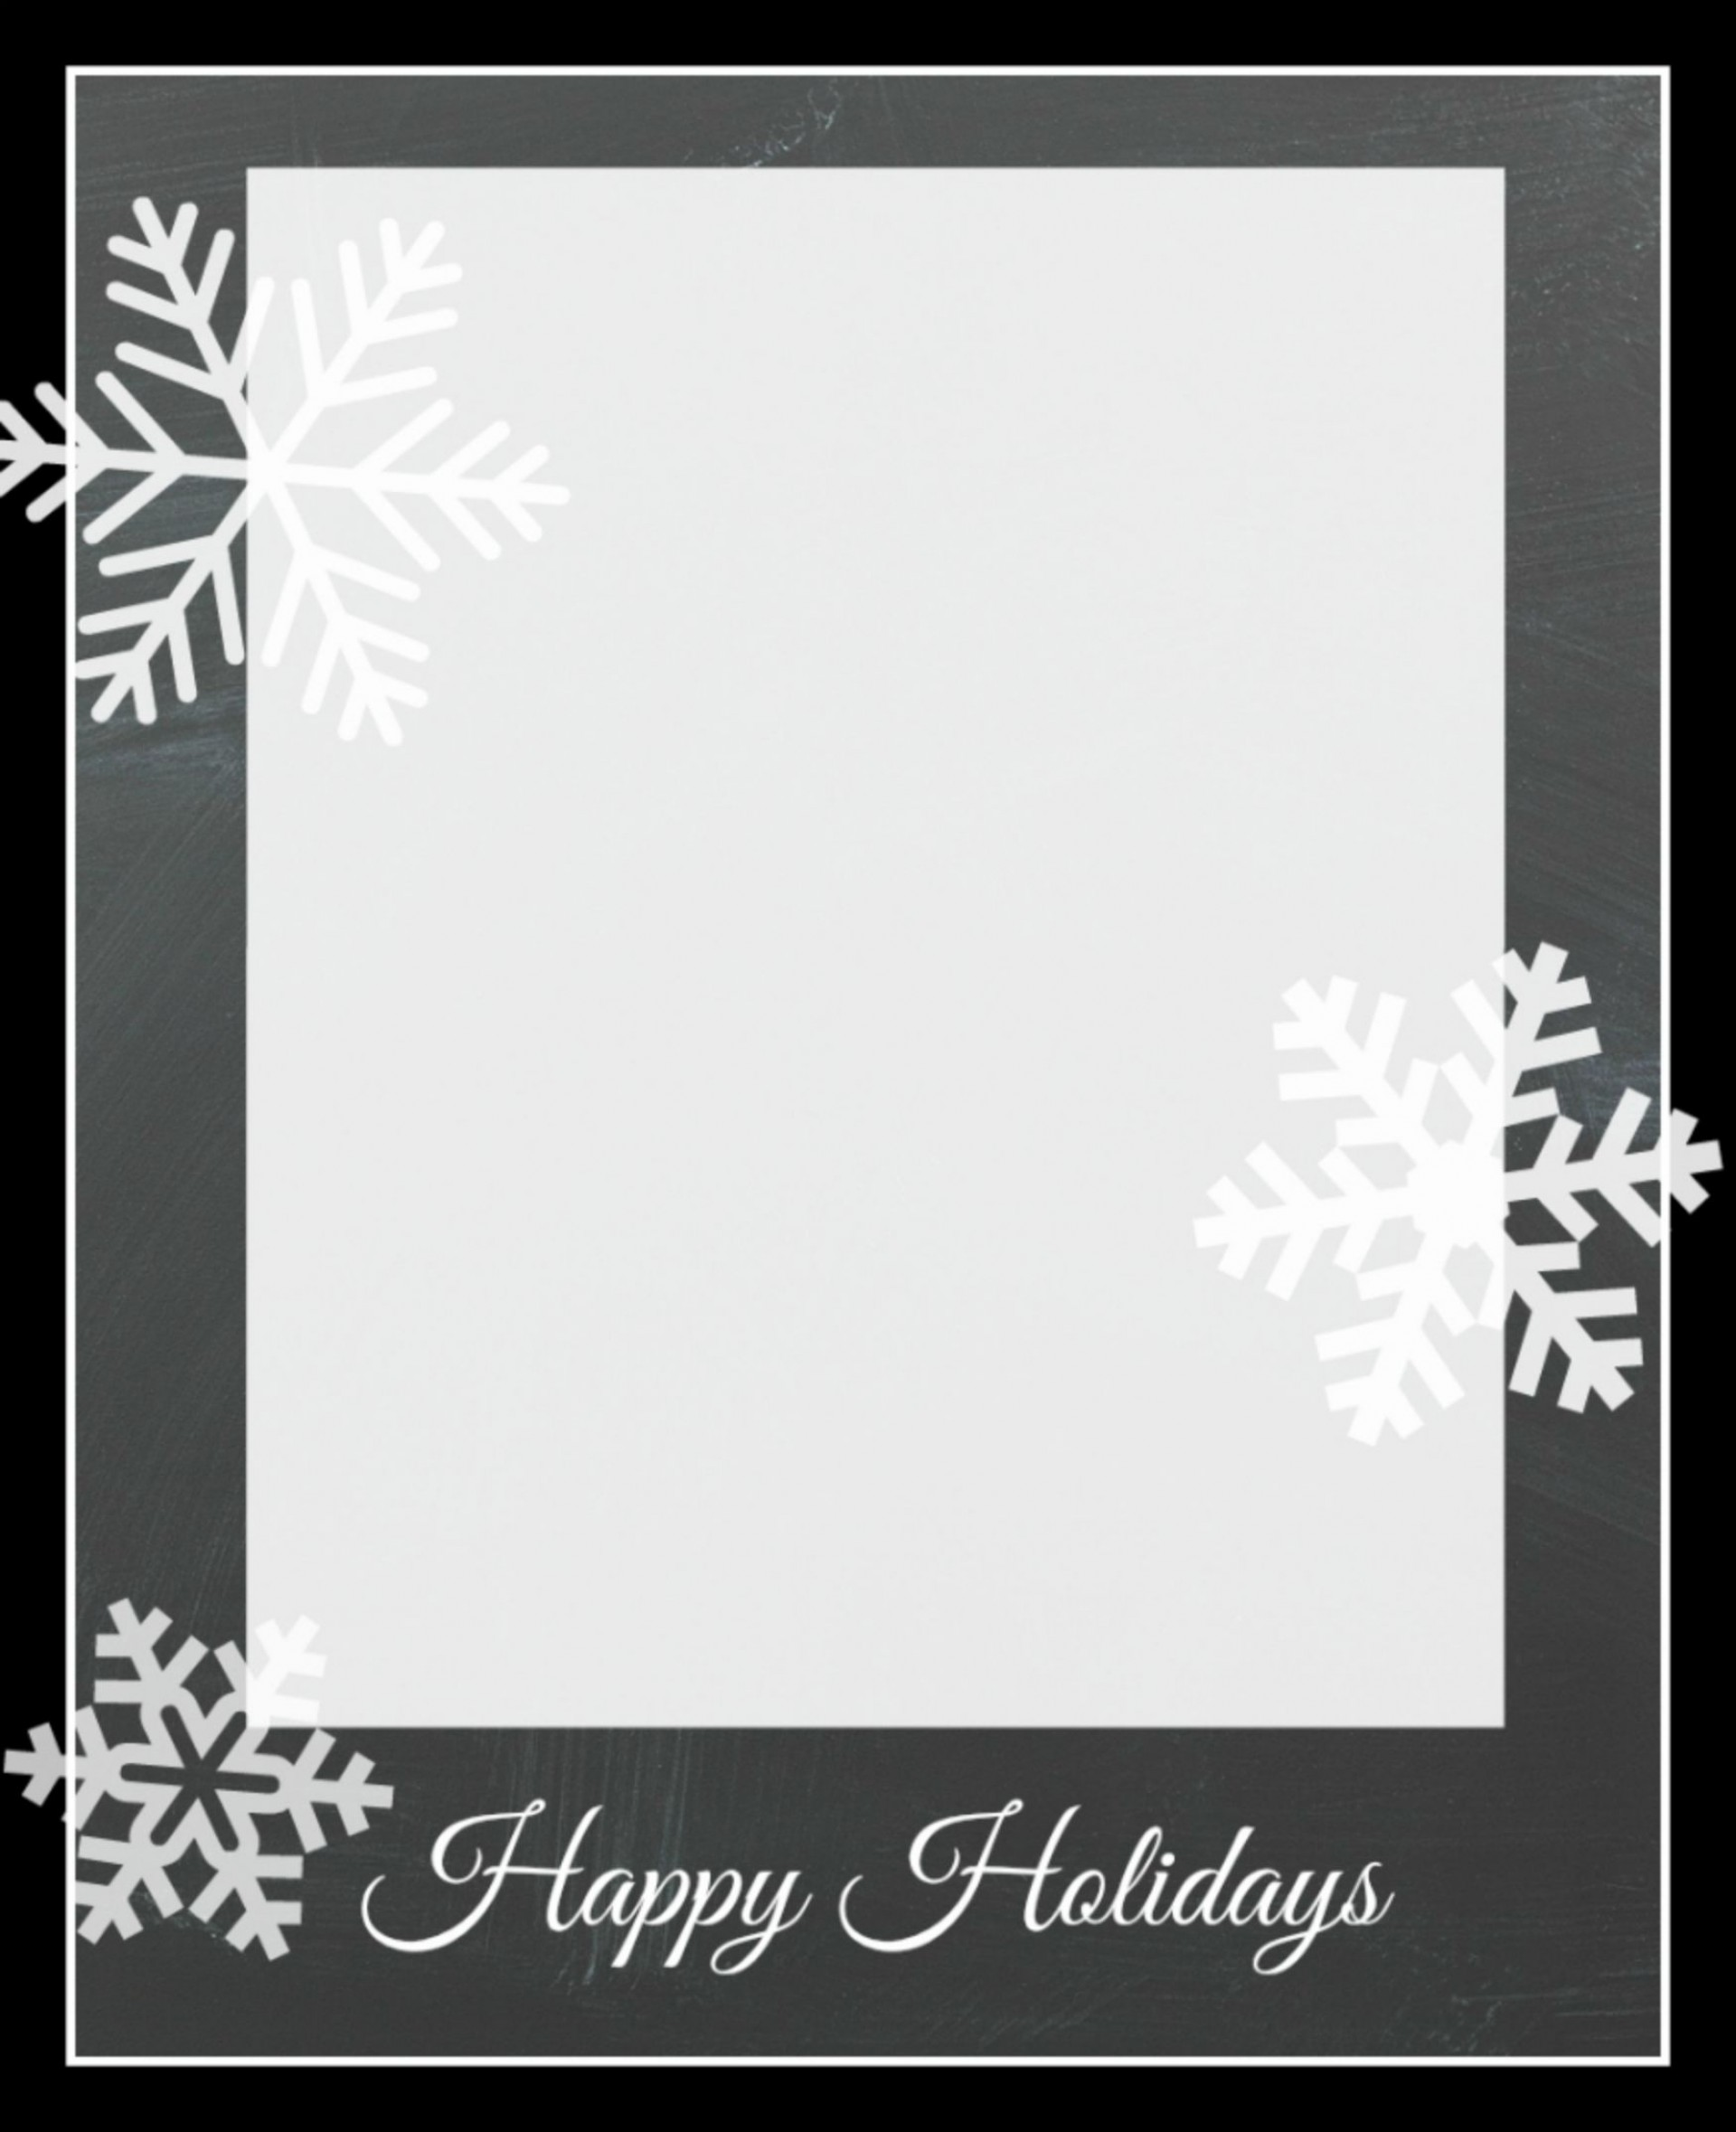 010 Remarkable Free Photo Card Template Idea  Templates Christma Printable Design To Print1920